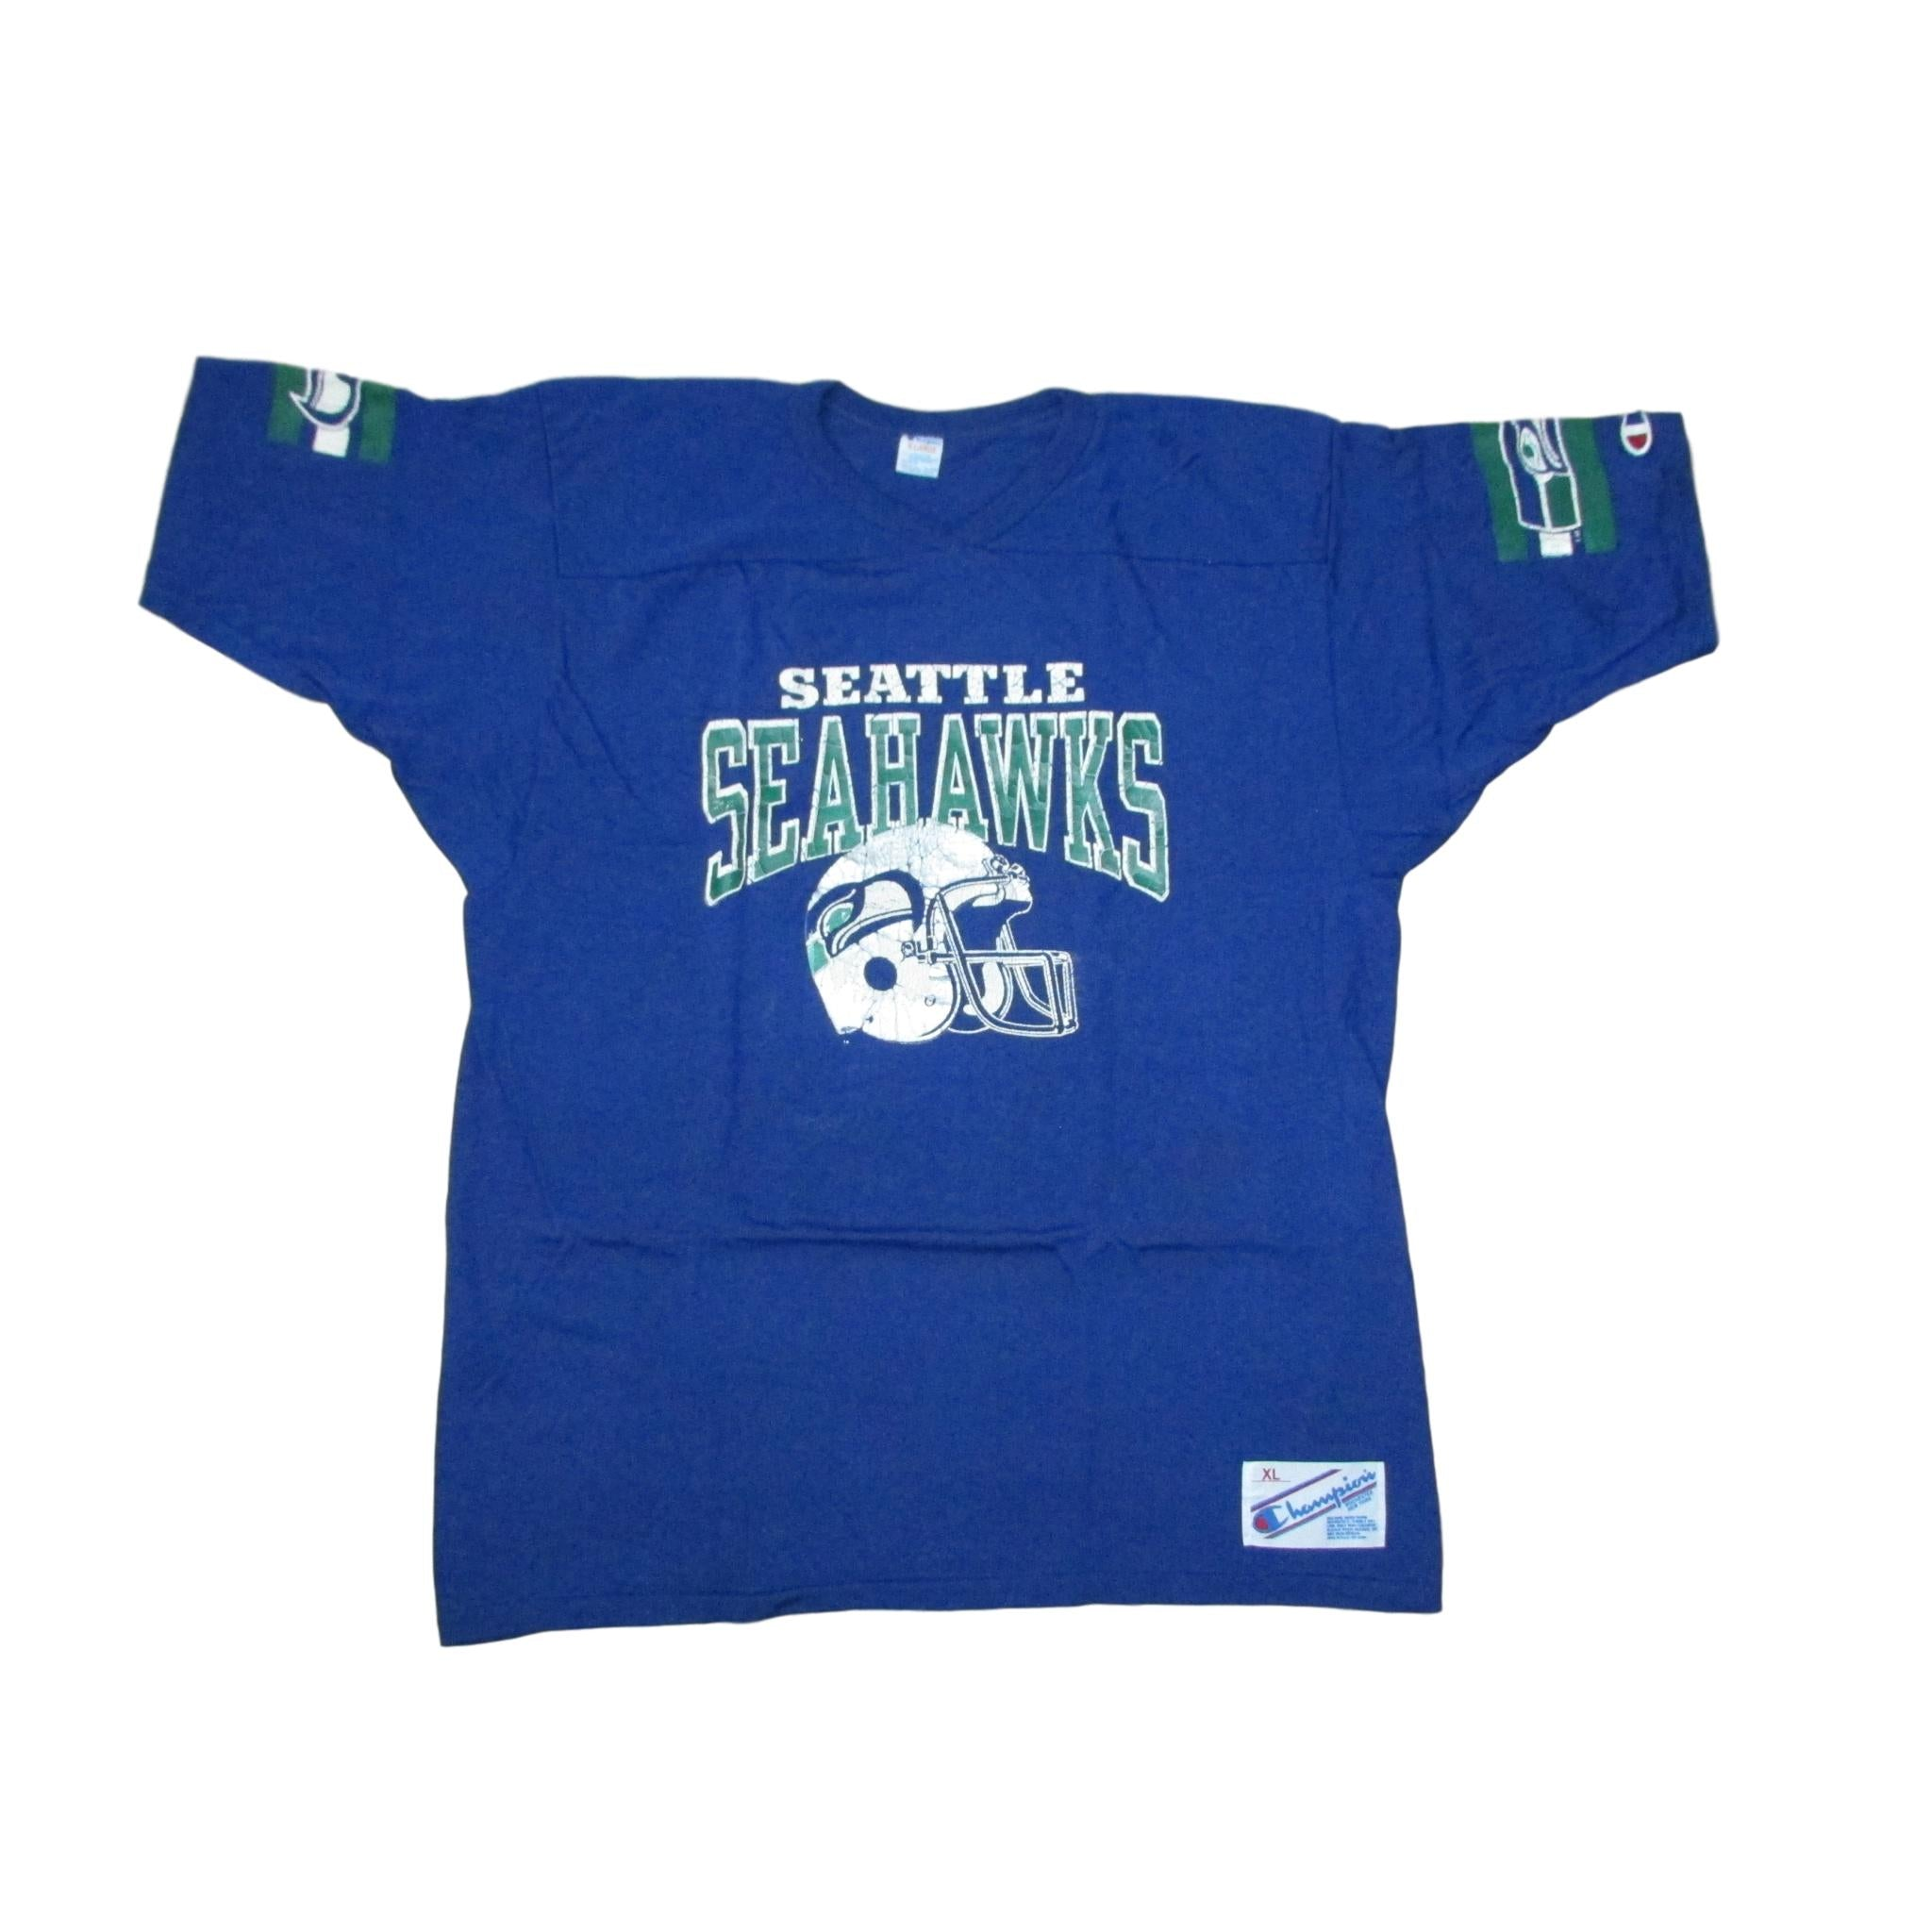 Seattle Seahawks Vintage Football T-Shirt Jersey Champion Sz XL